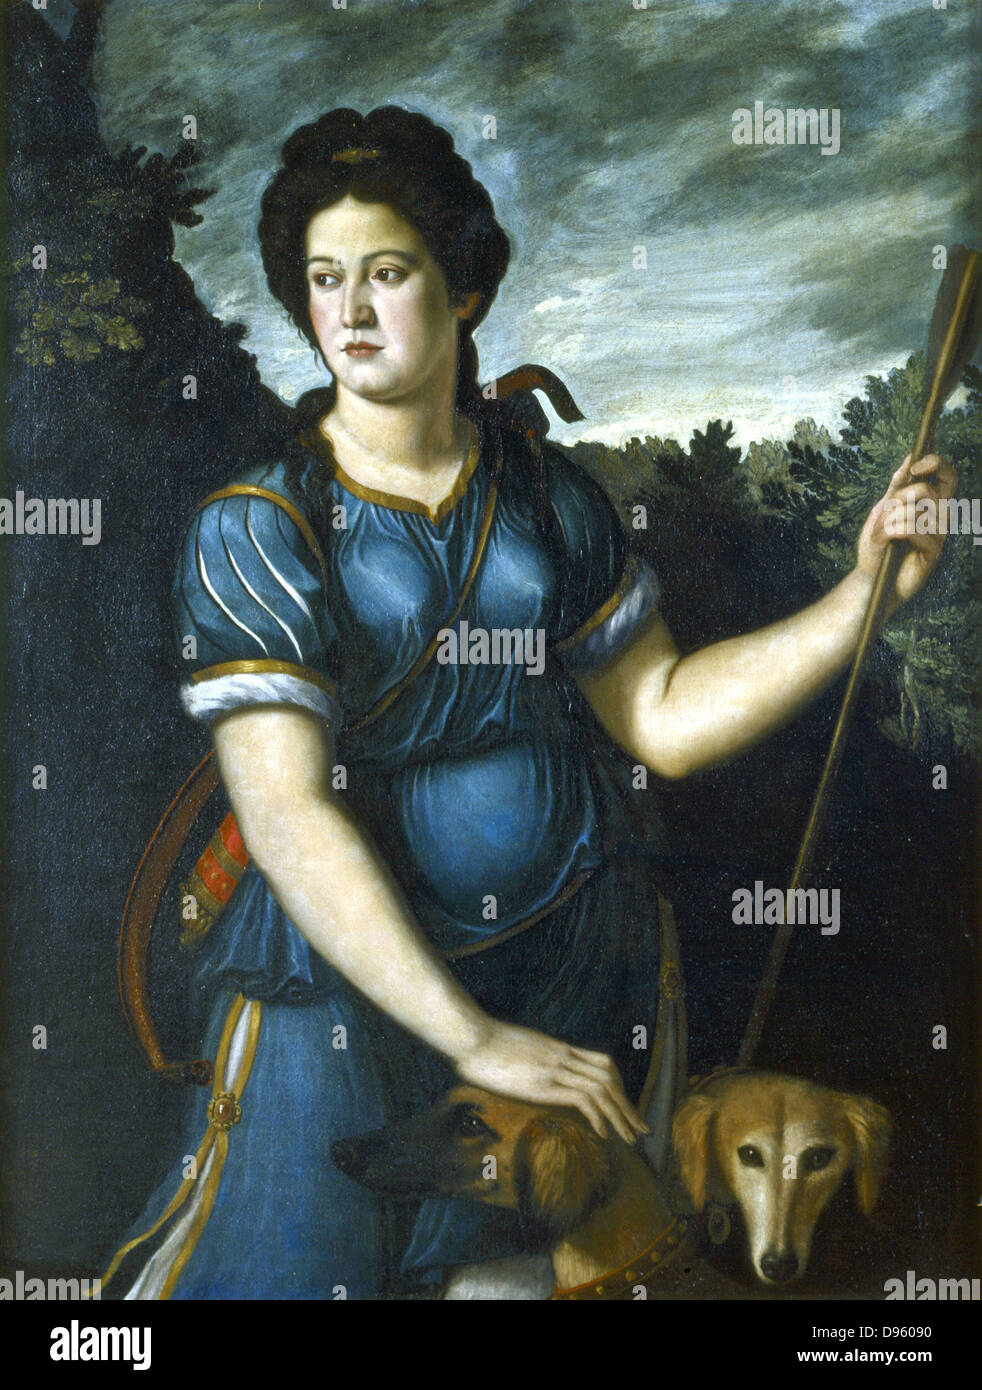 diana the huntress with her two dogs u0027 roman goddess of the moon